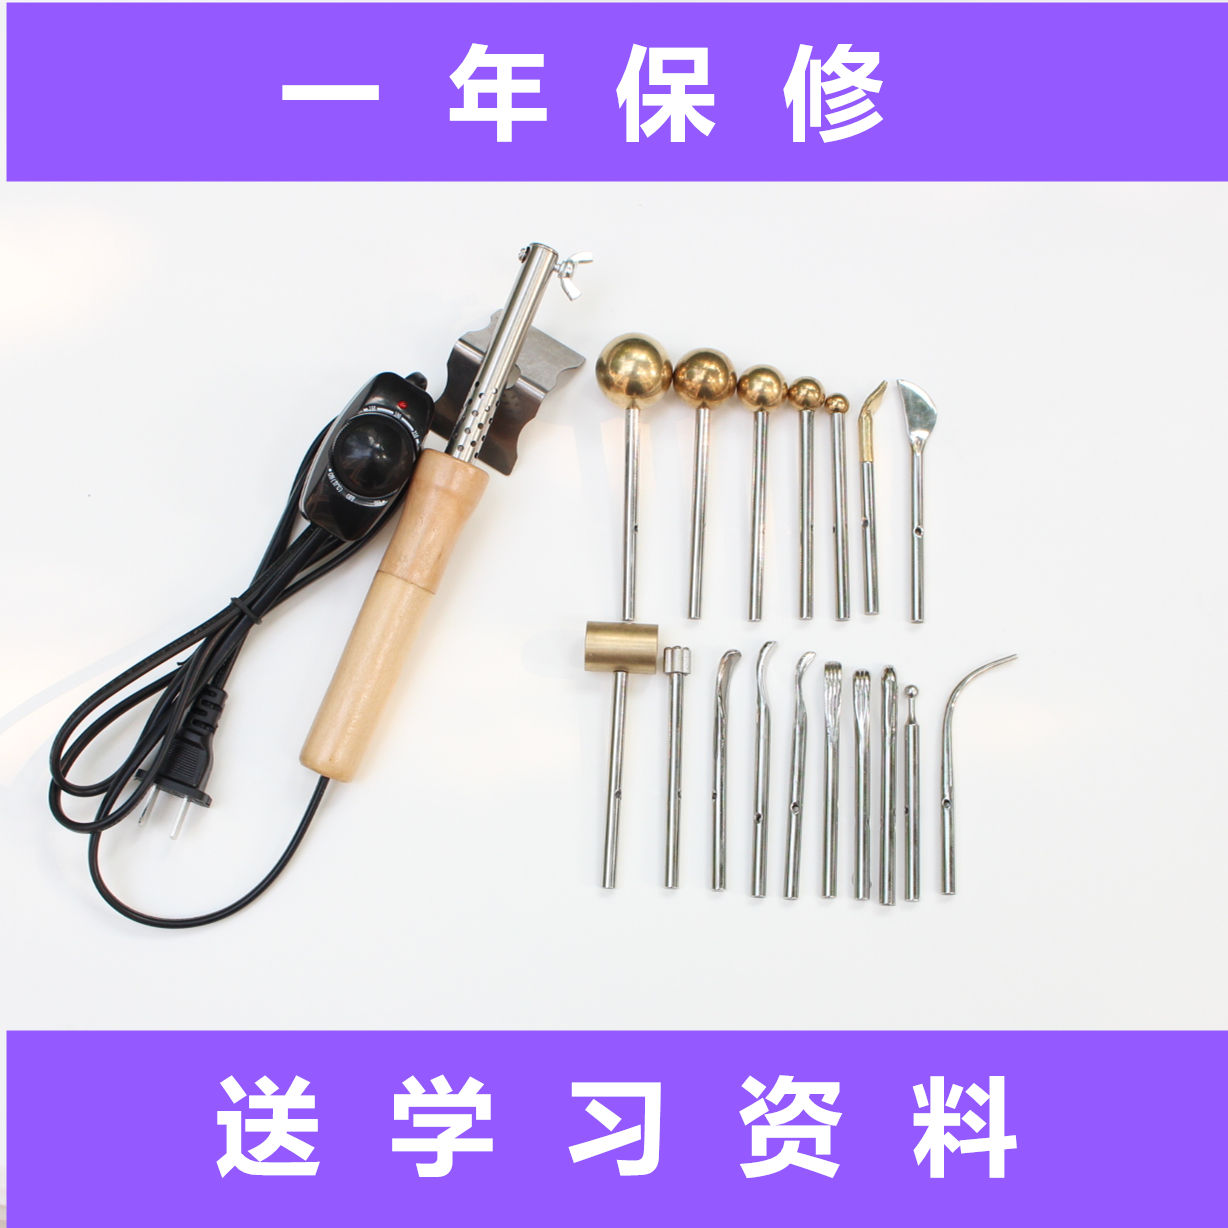 220v Imported Hot Flower 17 Hand-made Flower Tool Double Inner Core Leather Carving Tool To Send Flower Video